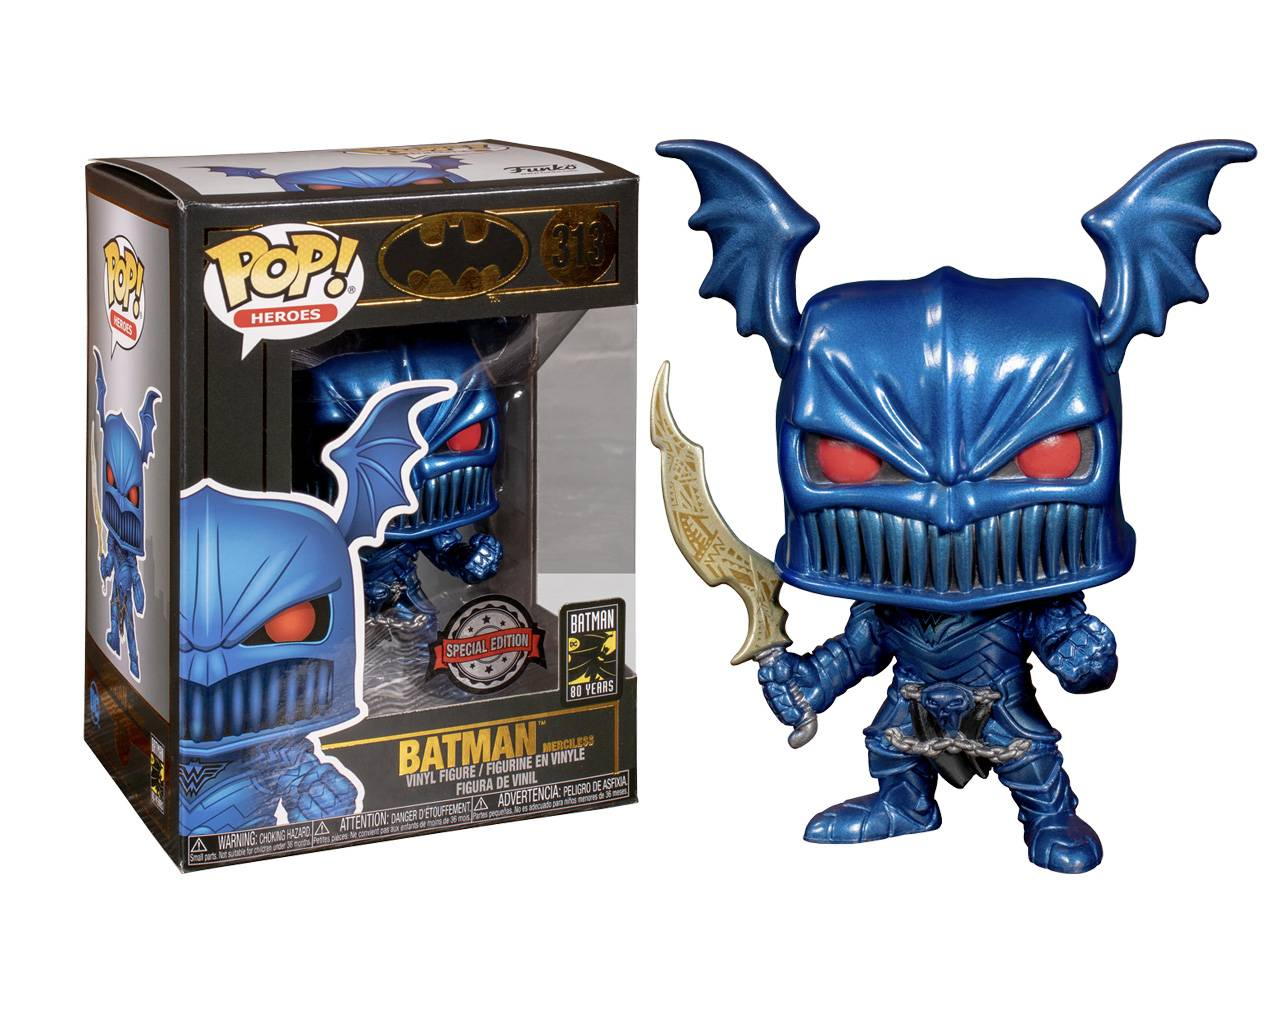 Batman (Merciless) Pop! Vinyl